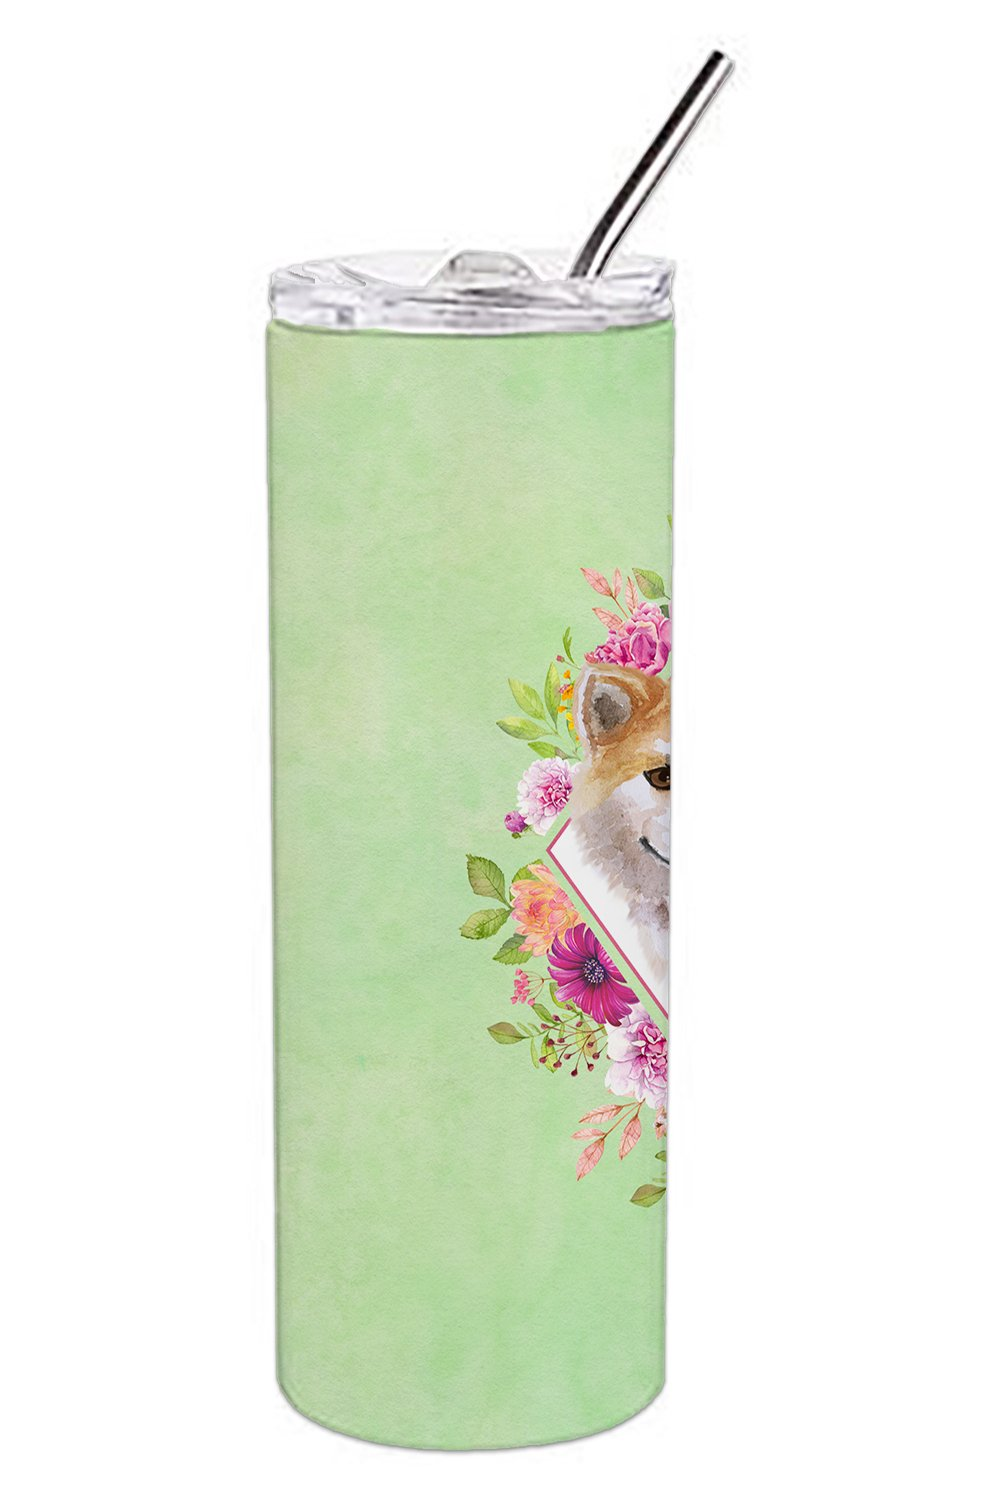 Shiba Inu Green Flowers Double Walled Stainless Steel 20 oz Skinny Tumbler CK4343TBL20 by Caroline's Treasures